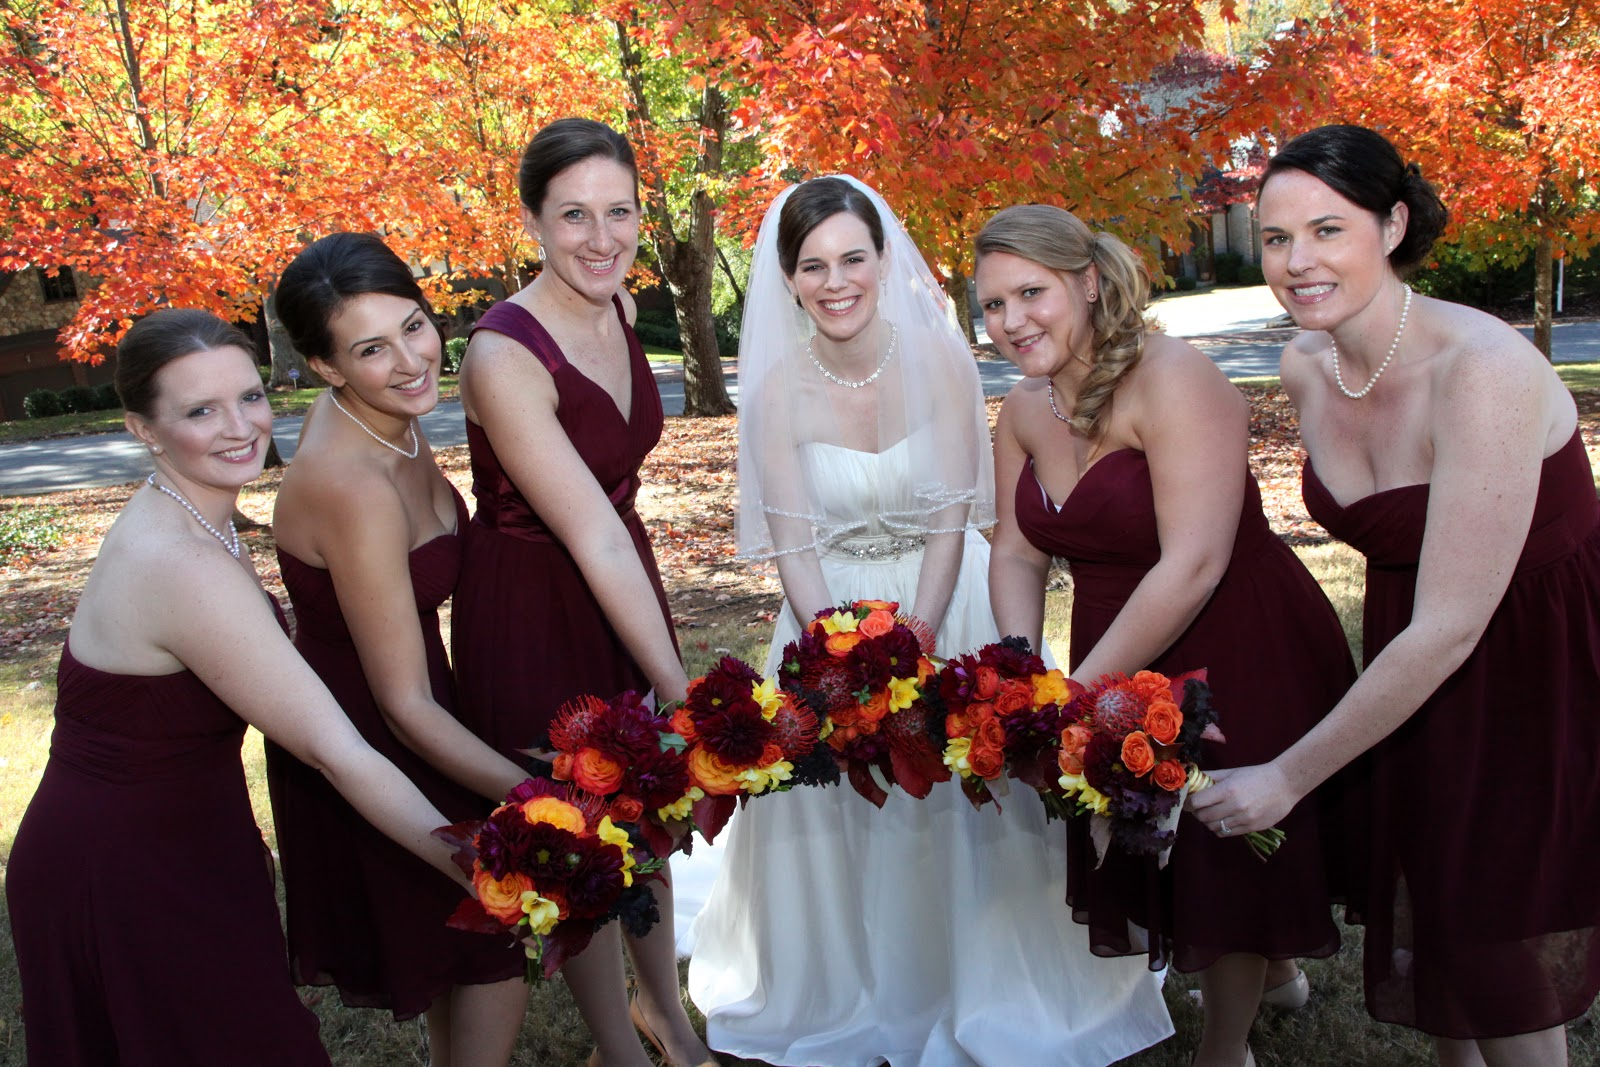 Fall wedding flowers at the peachtree club anik 39 s flowers for Simple fall bridesmaid bouquets